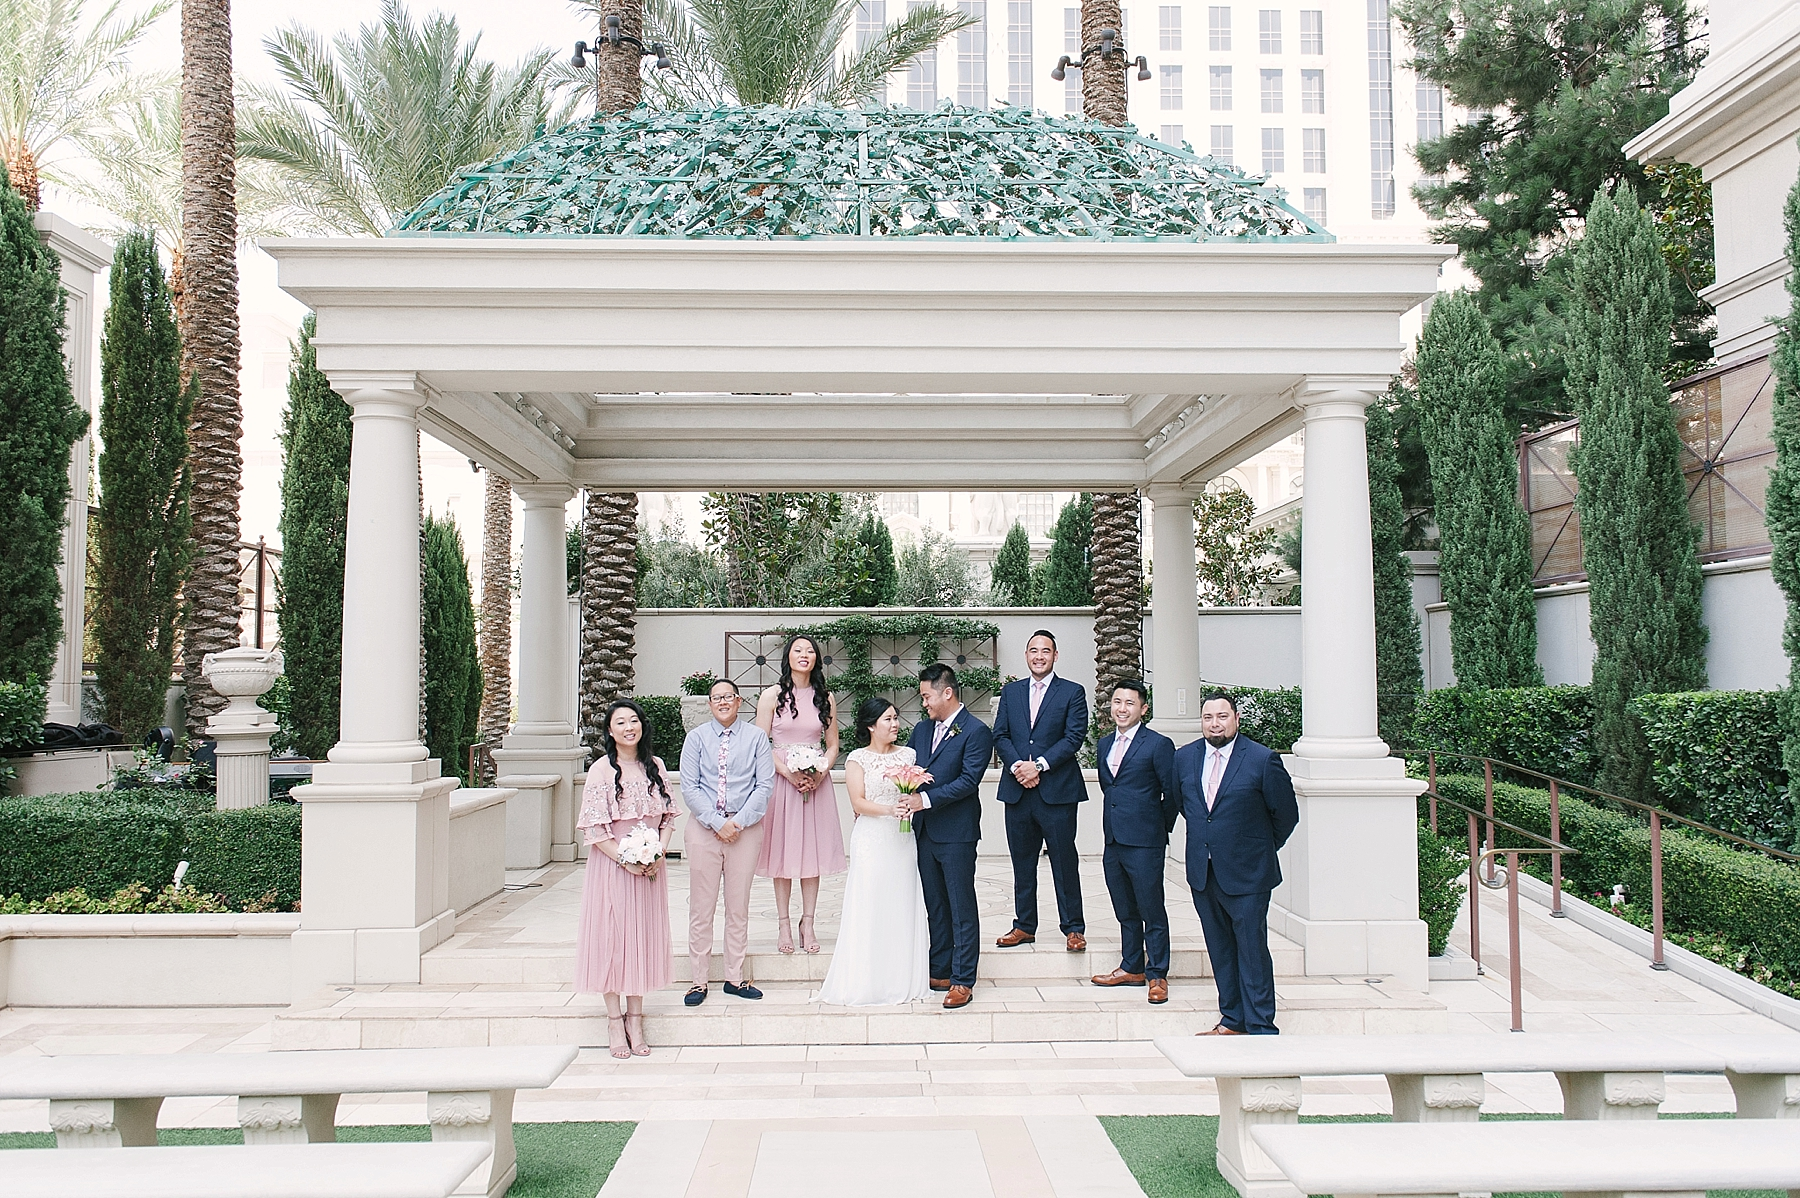 caesars_palace_wedding_las_vegas-31.jpg